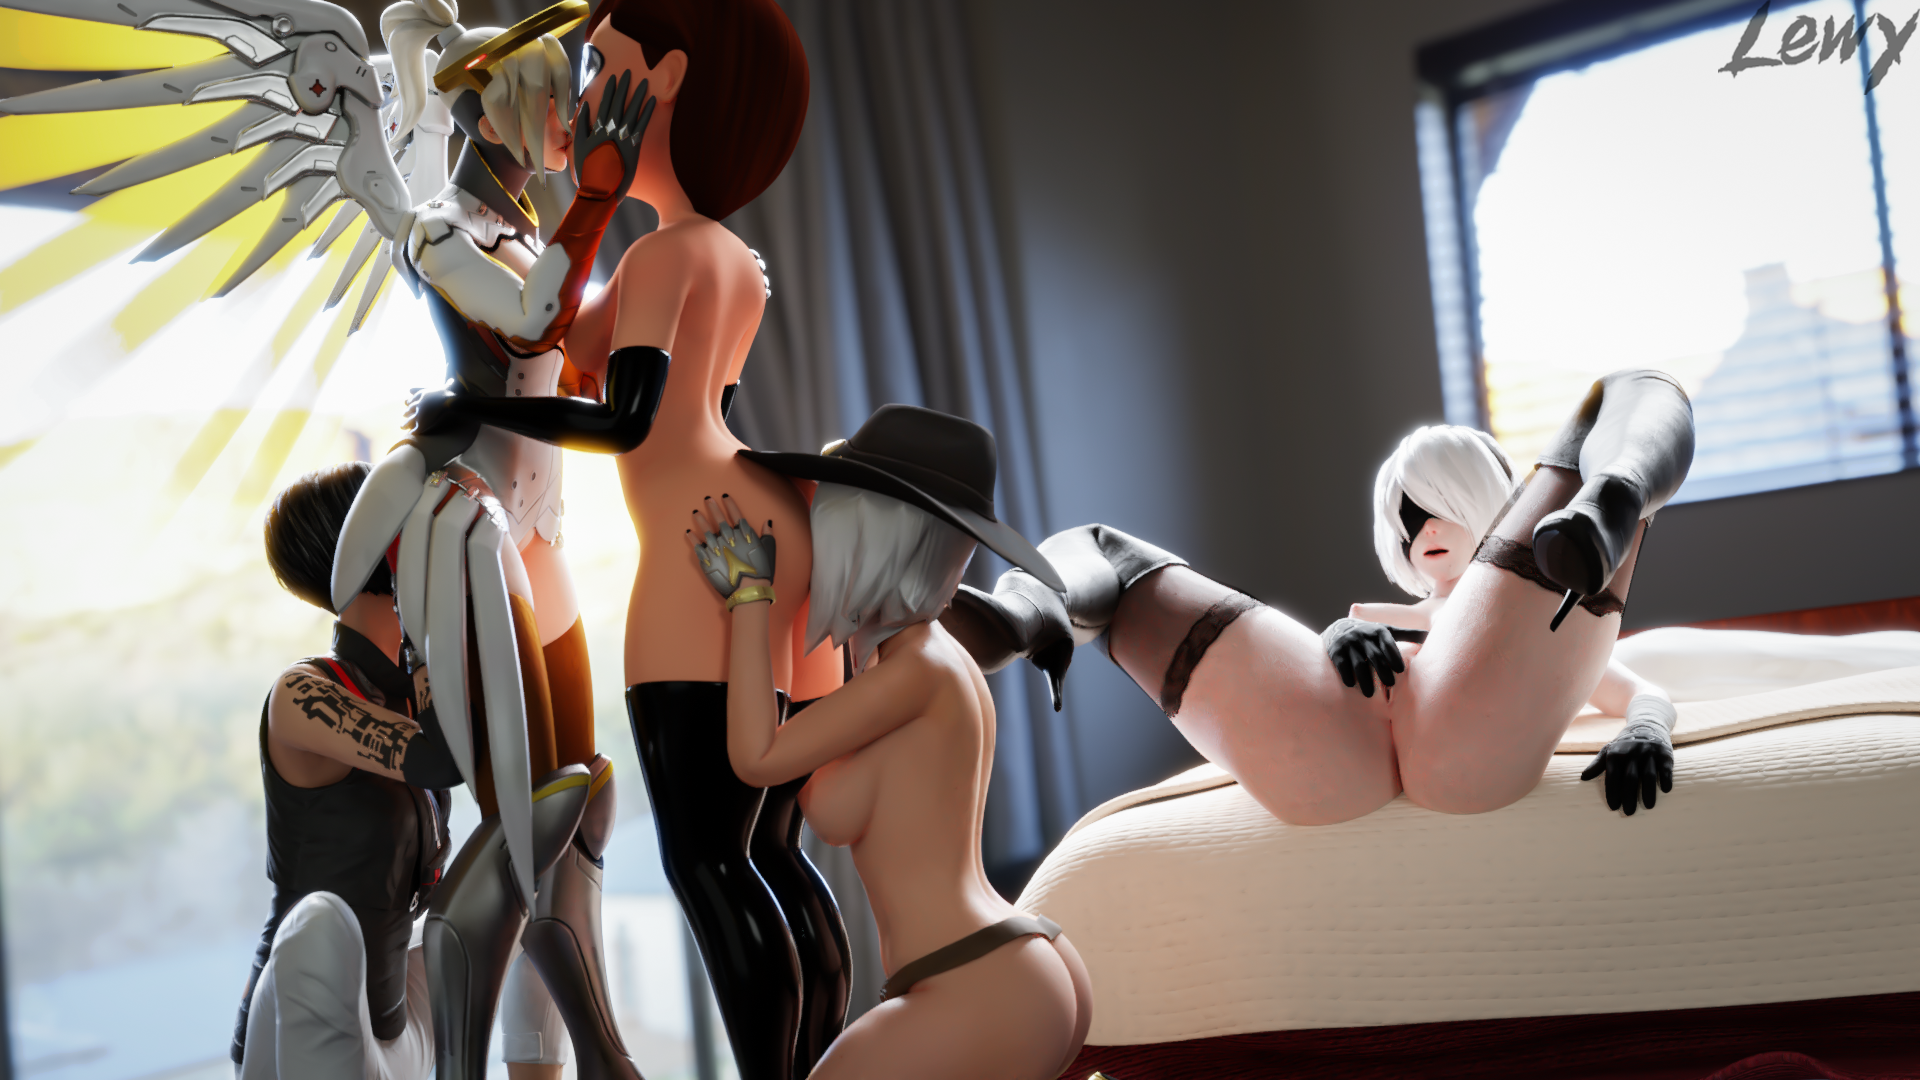 3378885 - Elizabeth_Caledonia_Ashe Faith_Connors Helen_Parr Lewy Mercy Mirror's_Edge Nier Nier_Automata Overlook The_Incredibles YoRHa_No.2_Type_B blender crossover